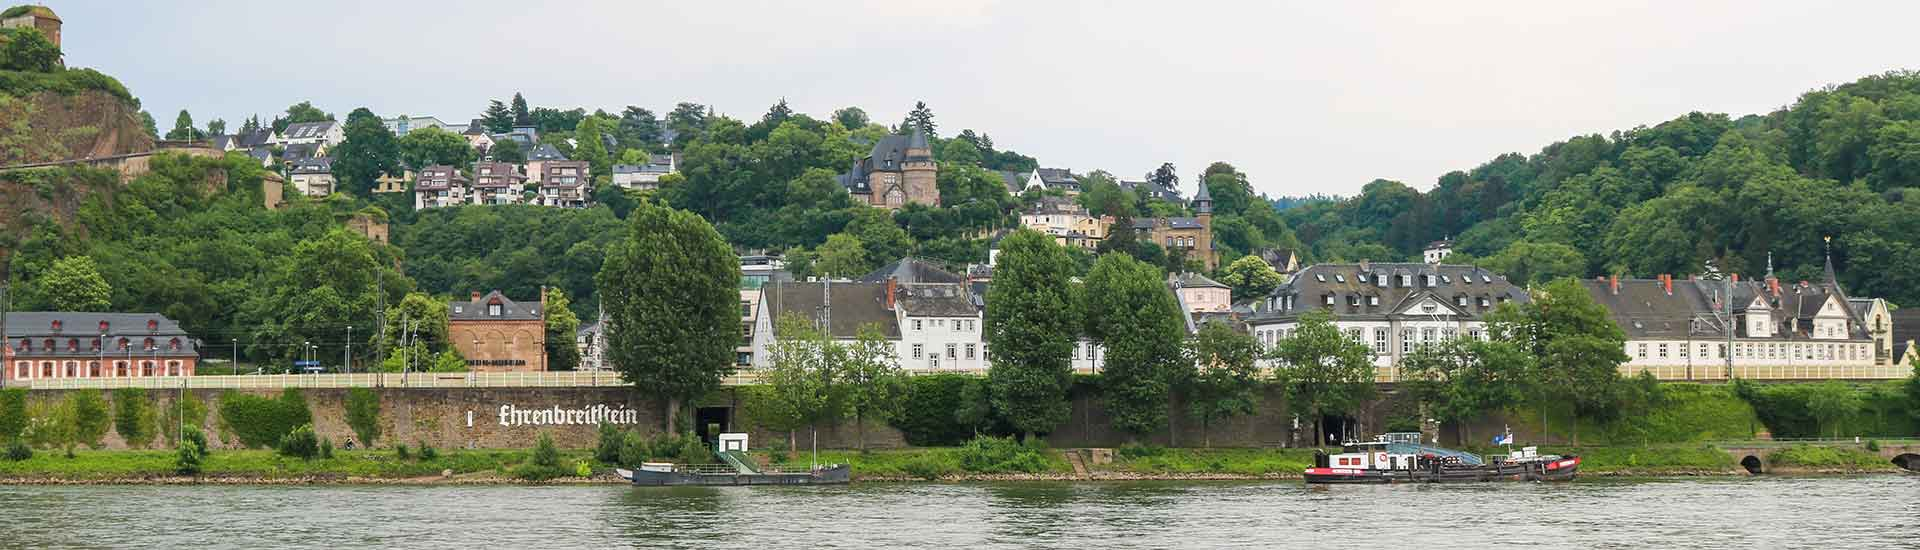 Hotel Kleiner Riesen Koblenz Koblenz Hotels Old Town 6 Great Places To Stay In 2019